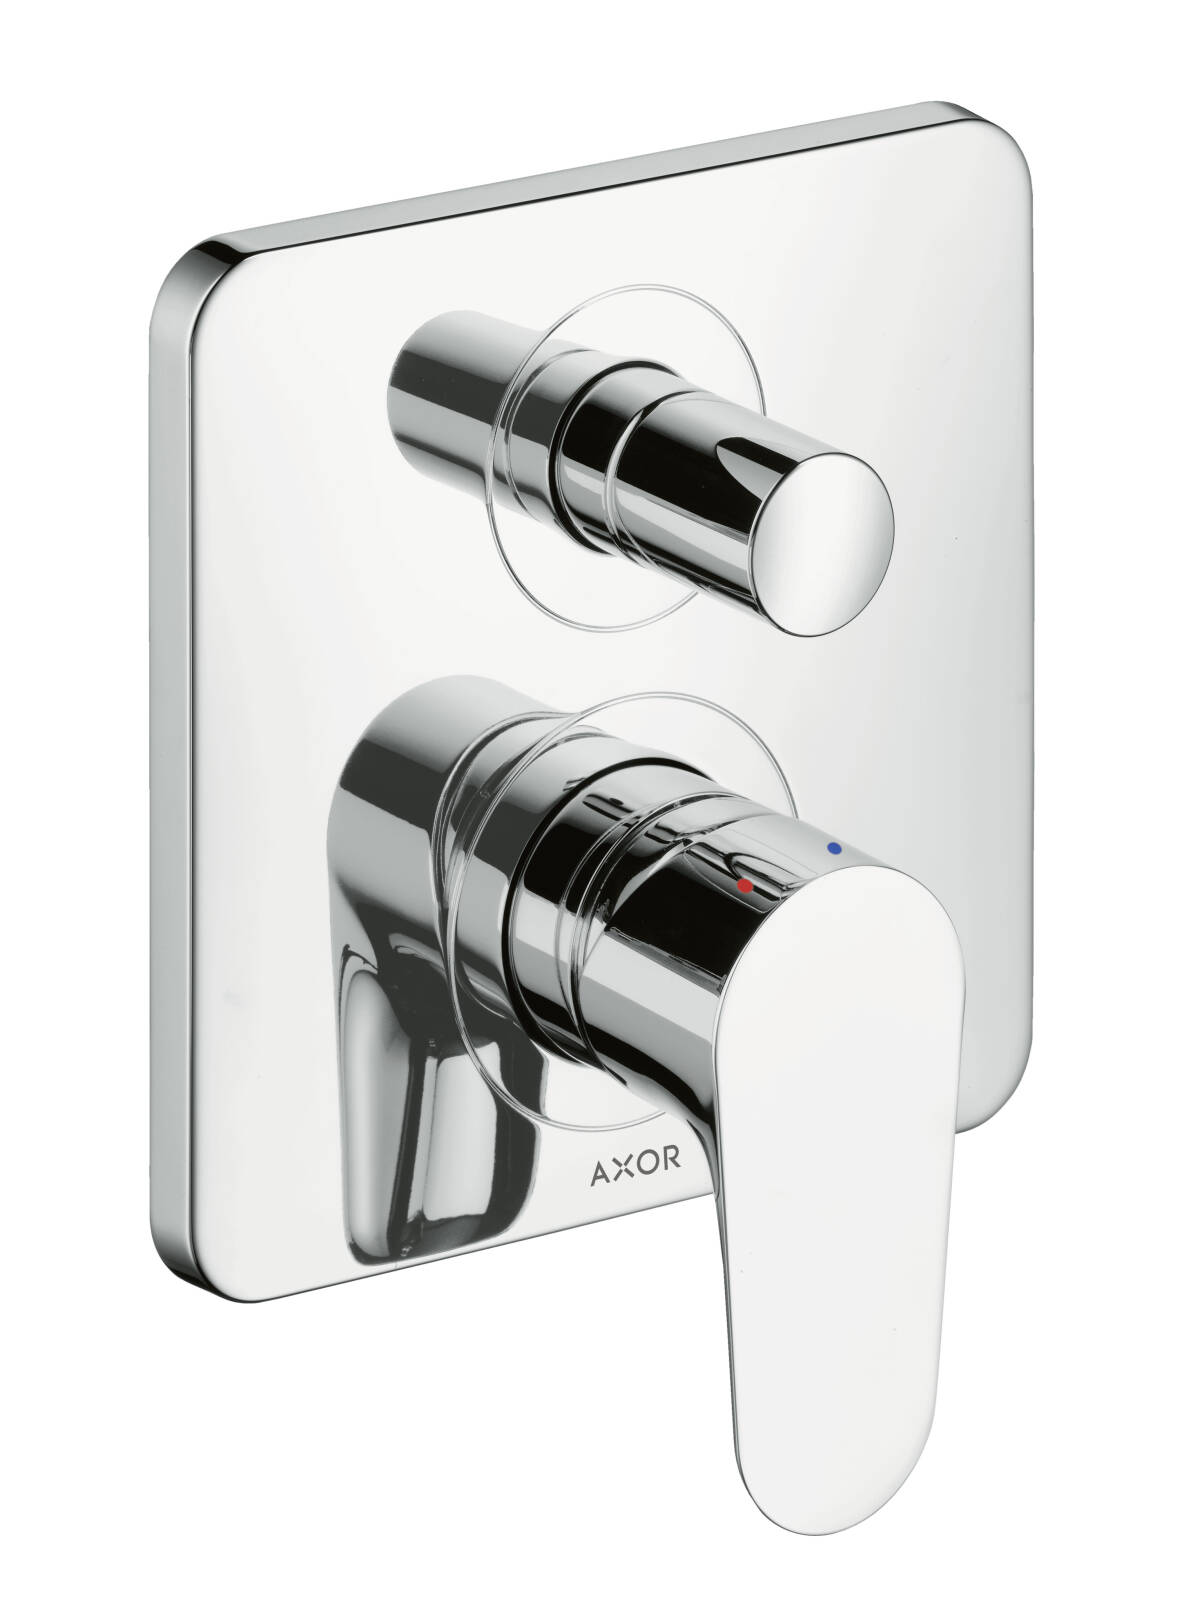 Single lever bath mixer for concealed installation with integrated security combination according to EN1717, Chrome, 34427000